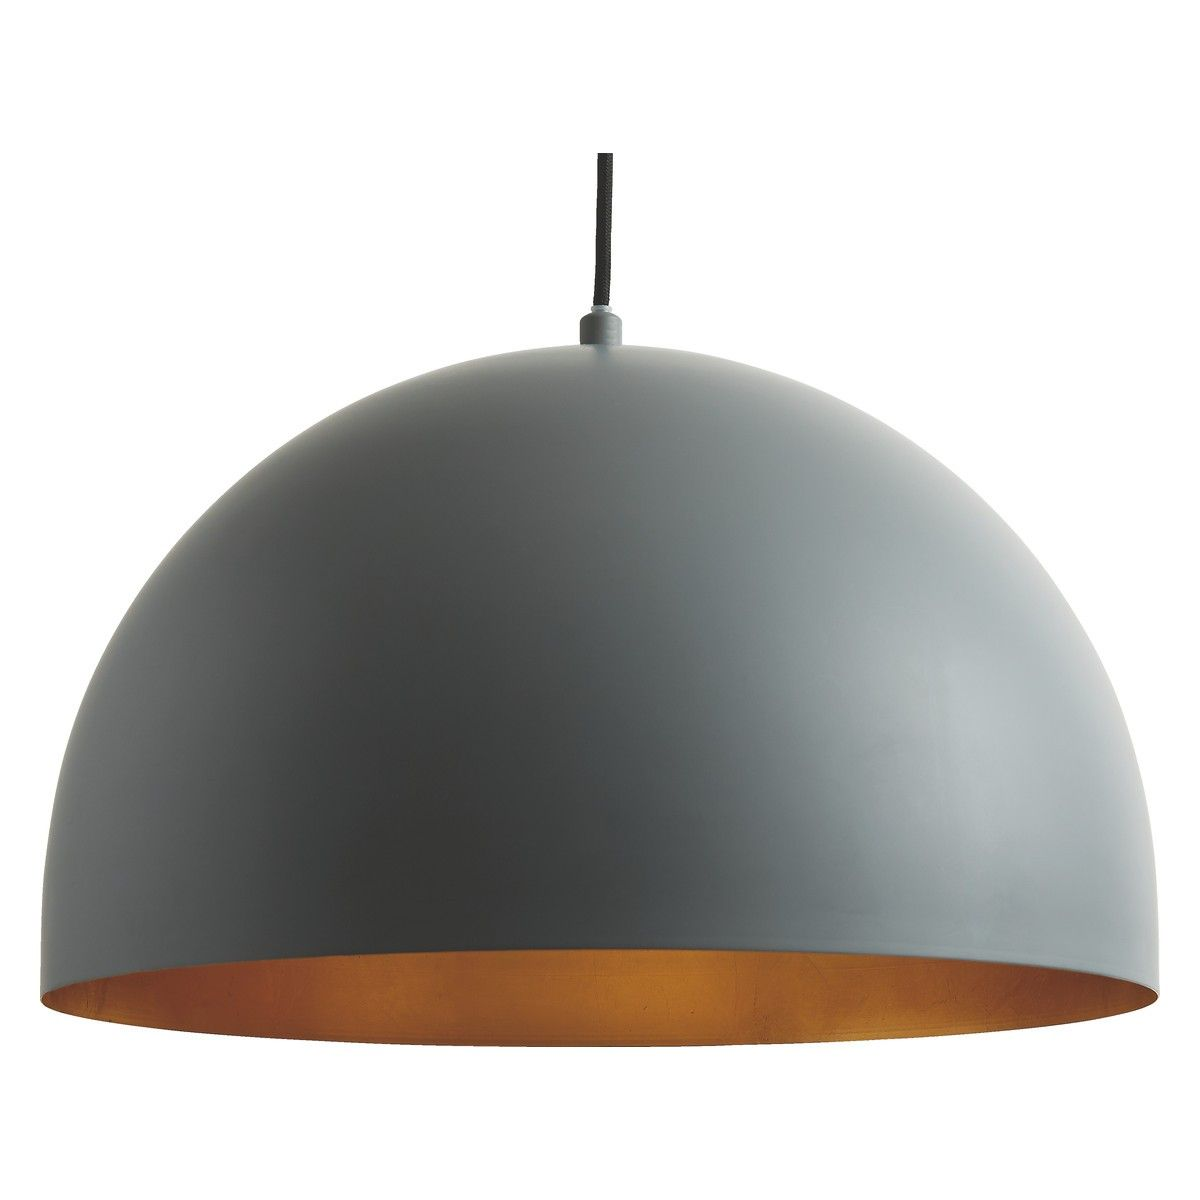 Large cut out dome metal lighting pendant shades cream - East East Grey And Gold Metal Ceiling Light